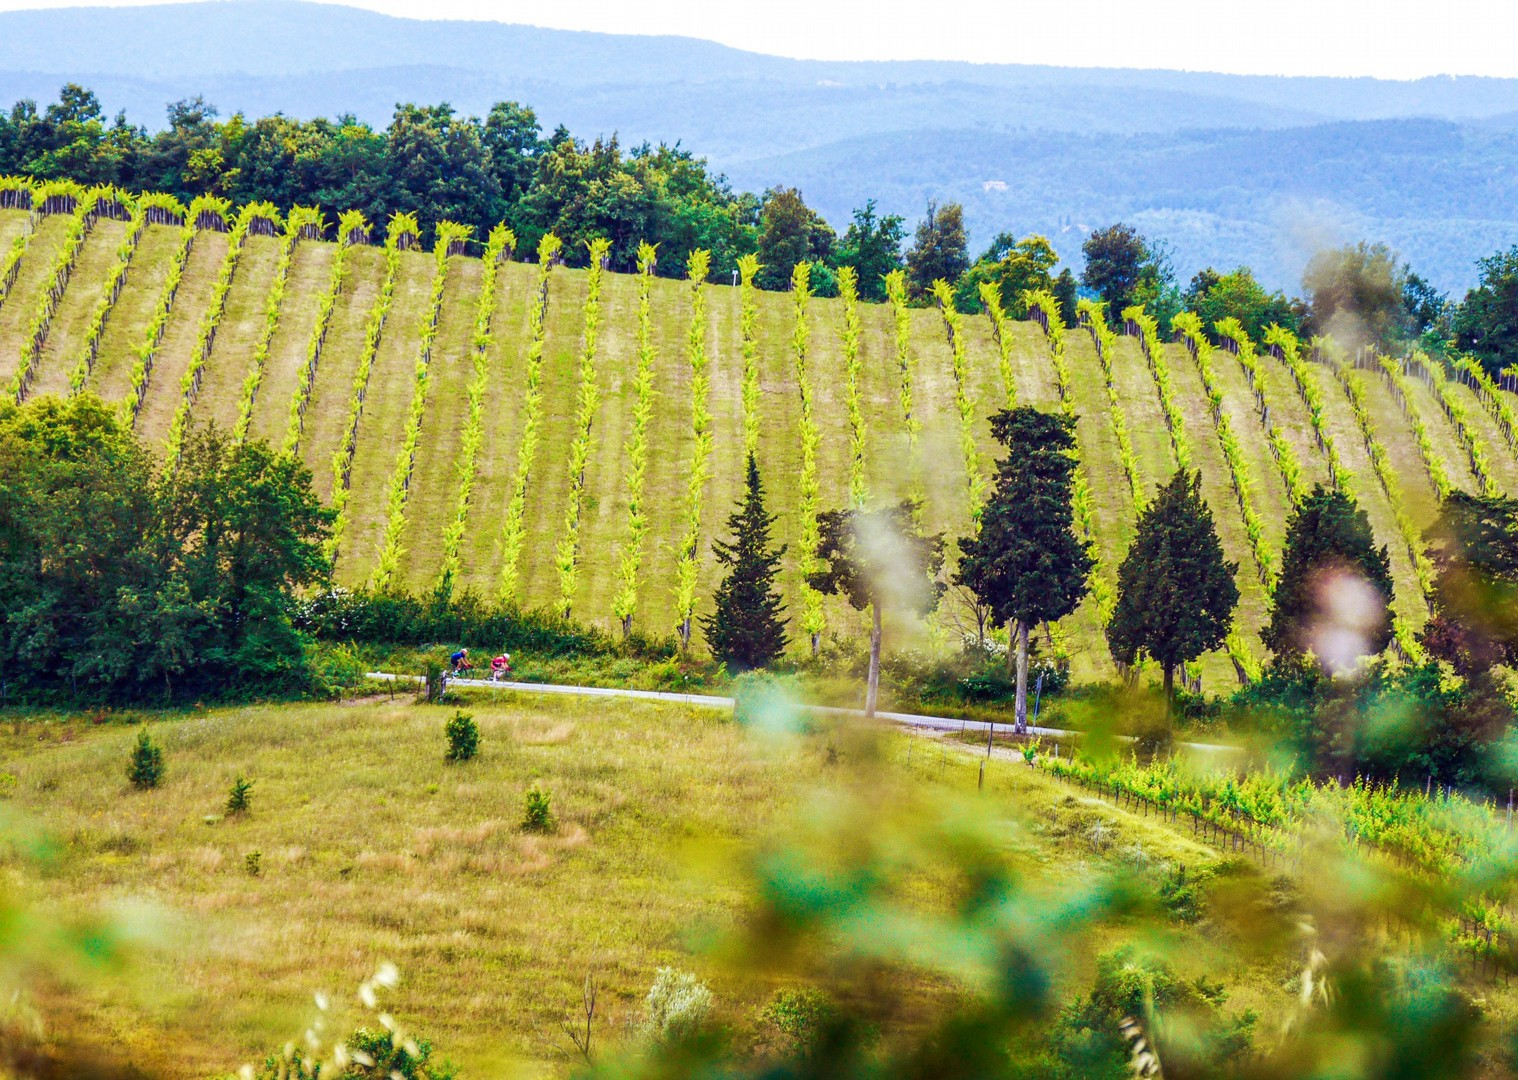 Riding through the vineyards.jpg - Italy - Tuscany Tourer - Road Cycling